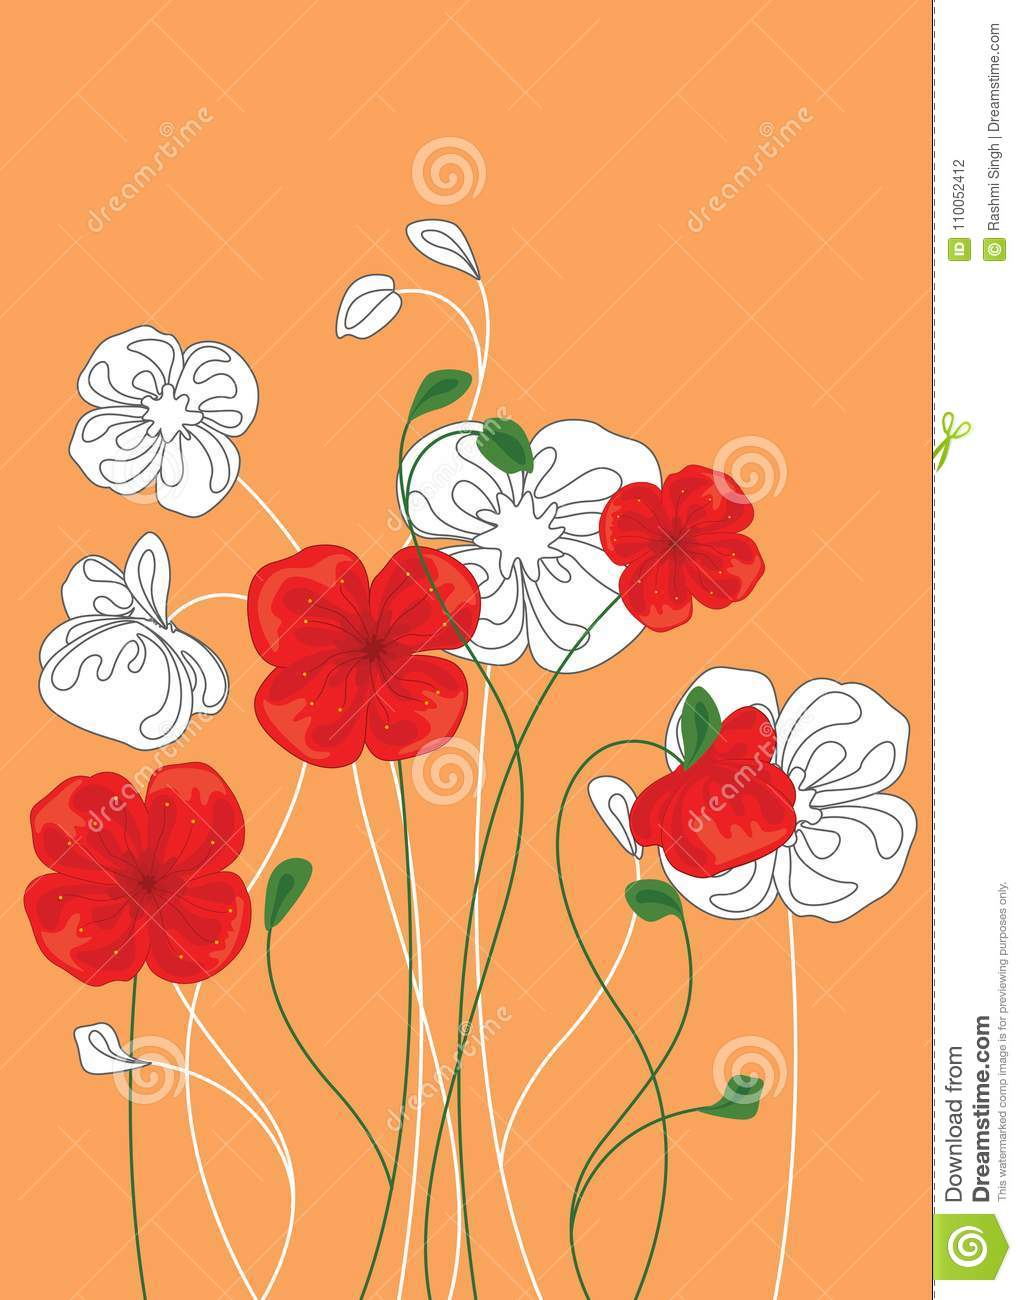 Red And White Poppy Flowers Floral Background With Poppies Vector